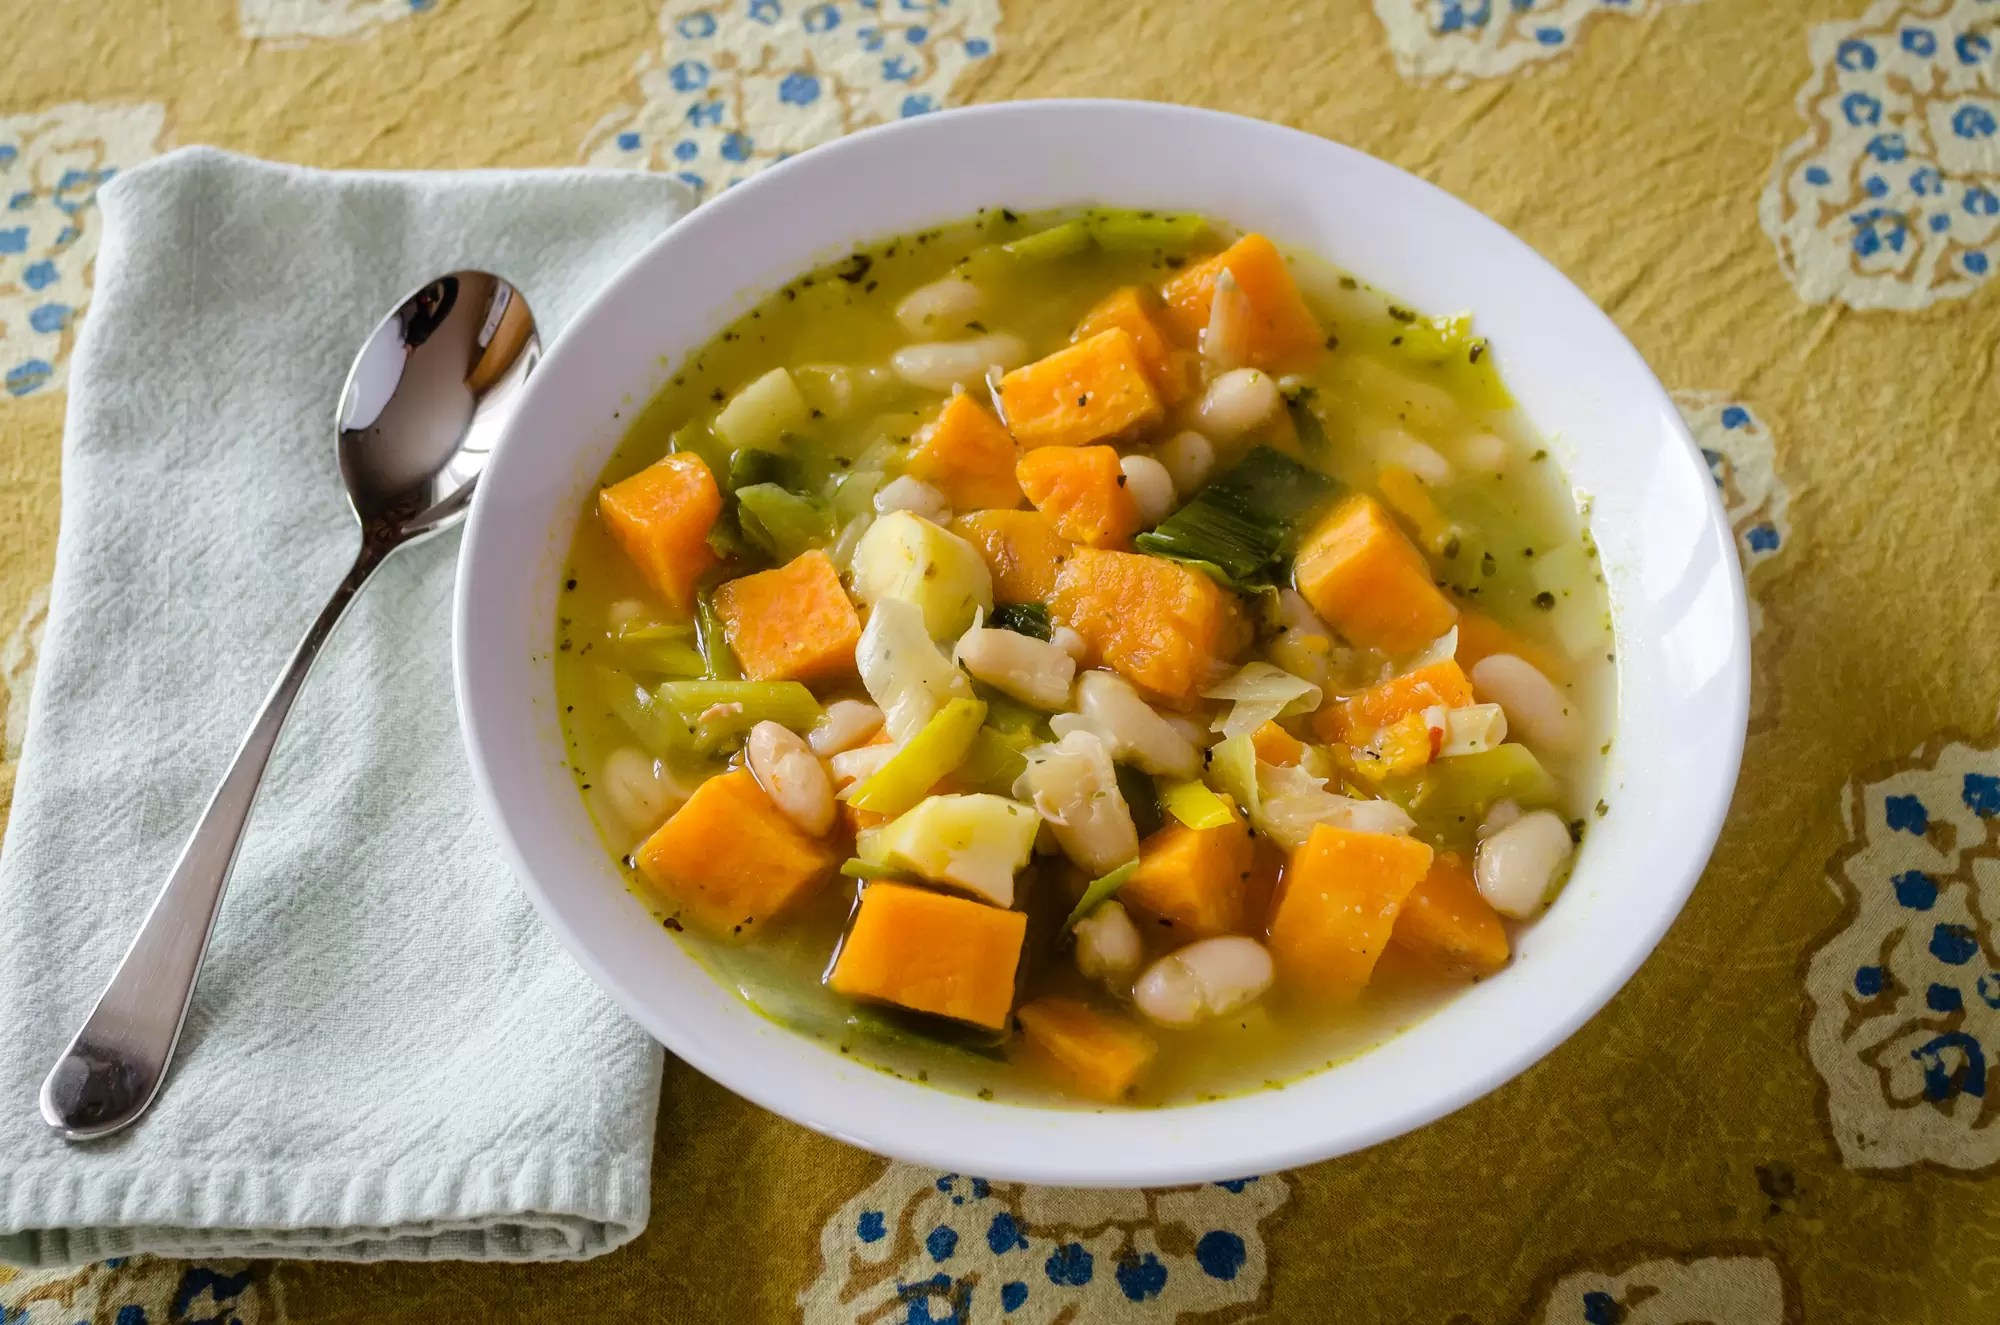 Sweet Potato, Leek, Parsnip And Bean Soup – A Vegan Winter Comfort Food